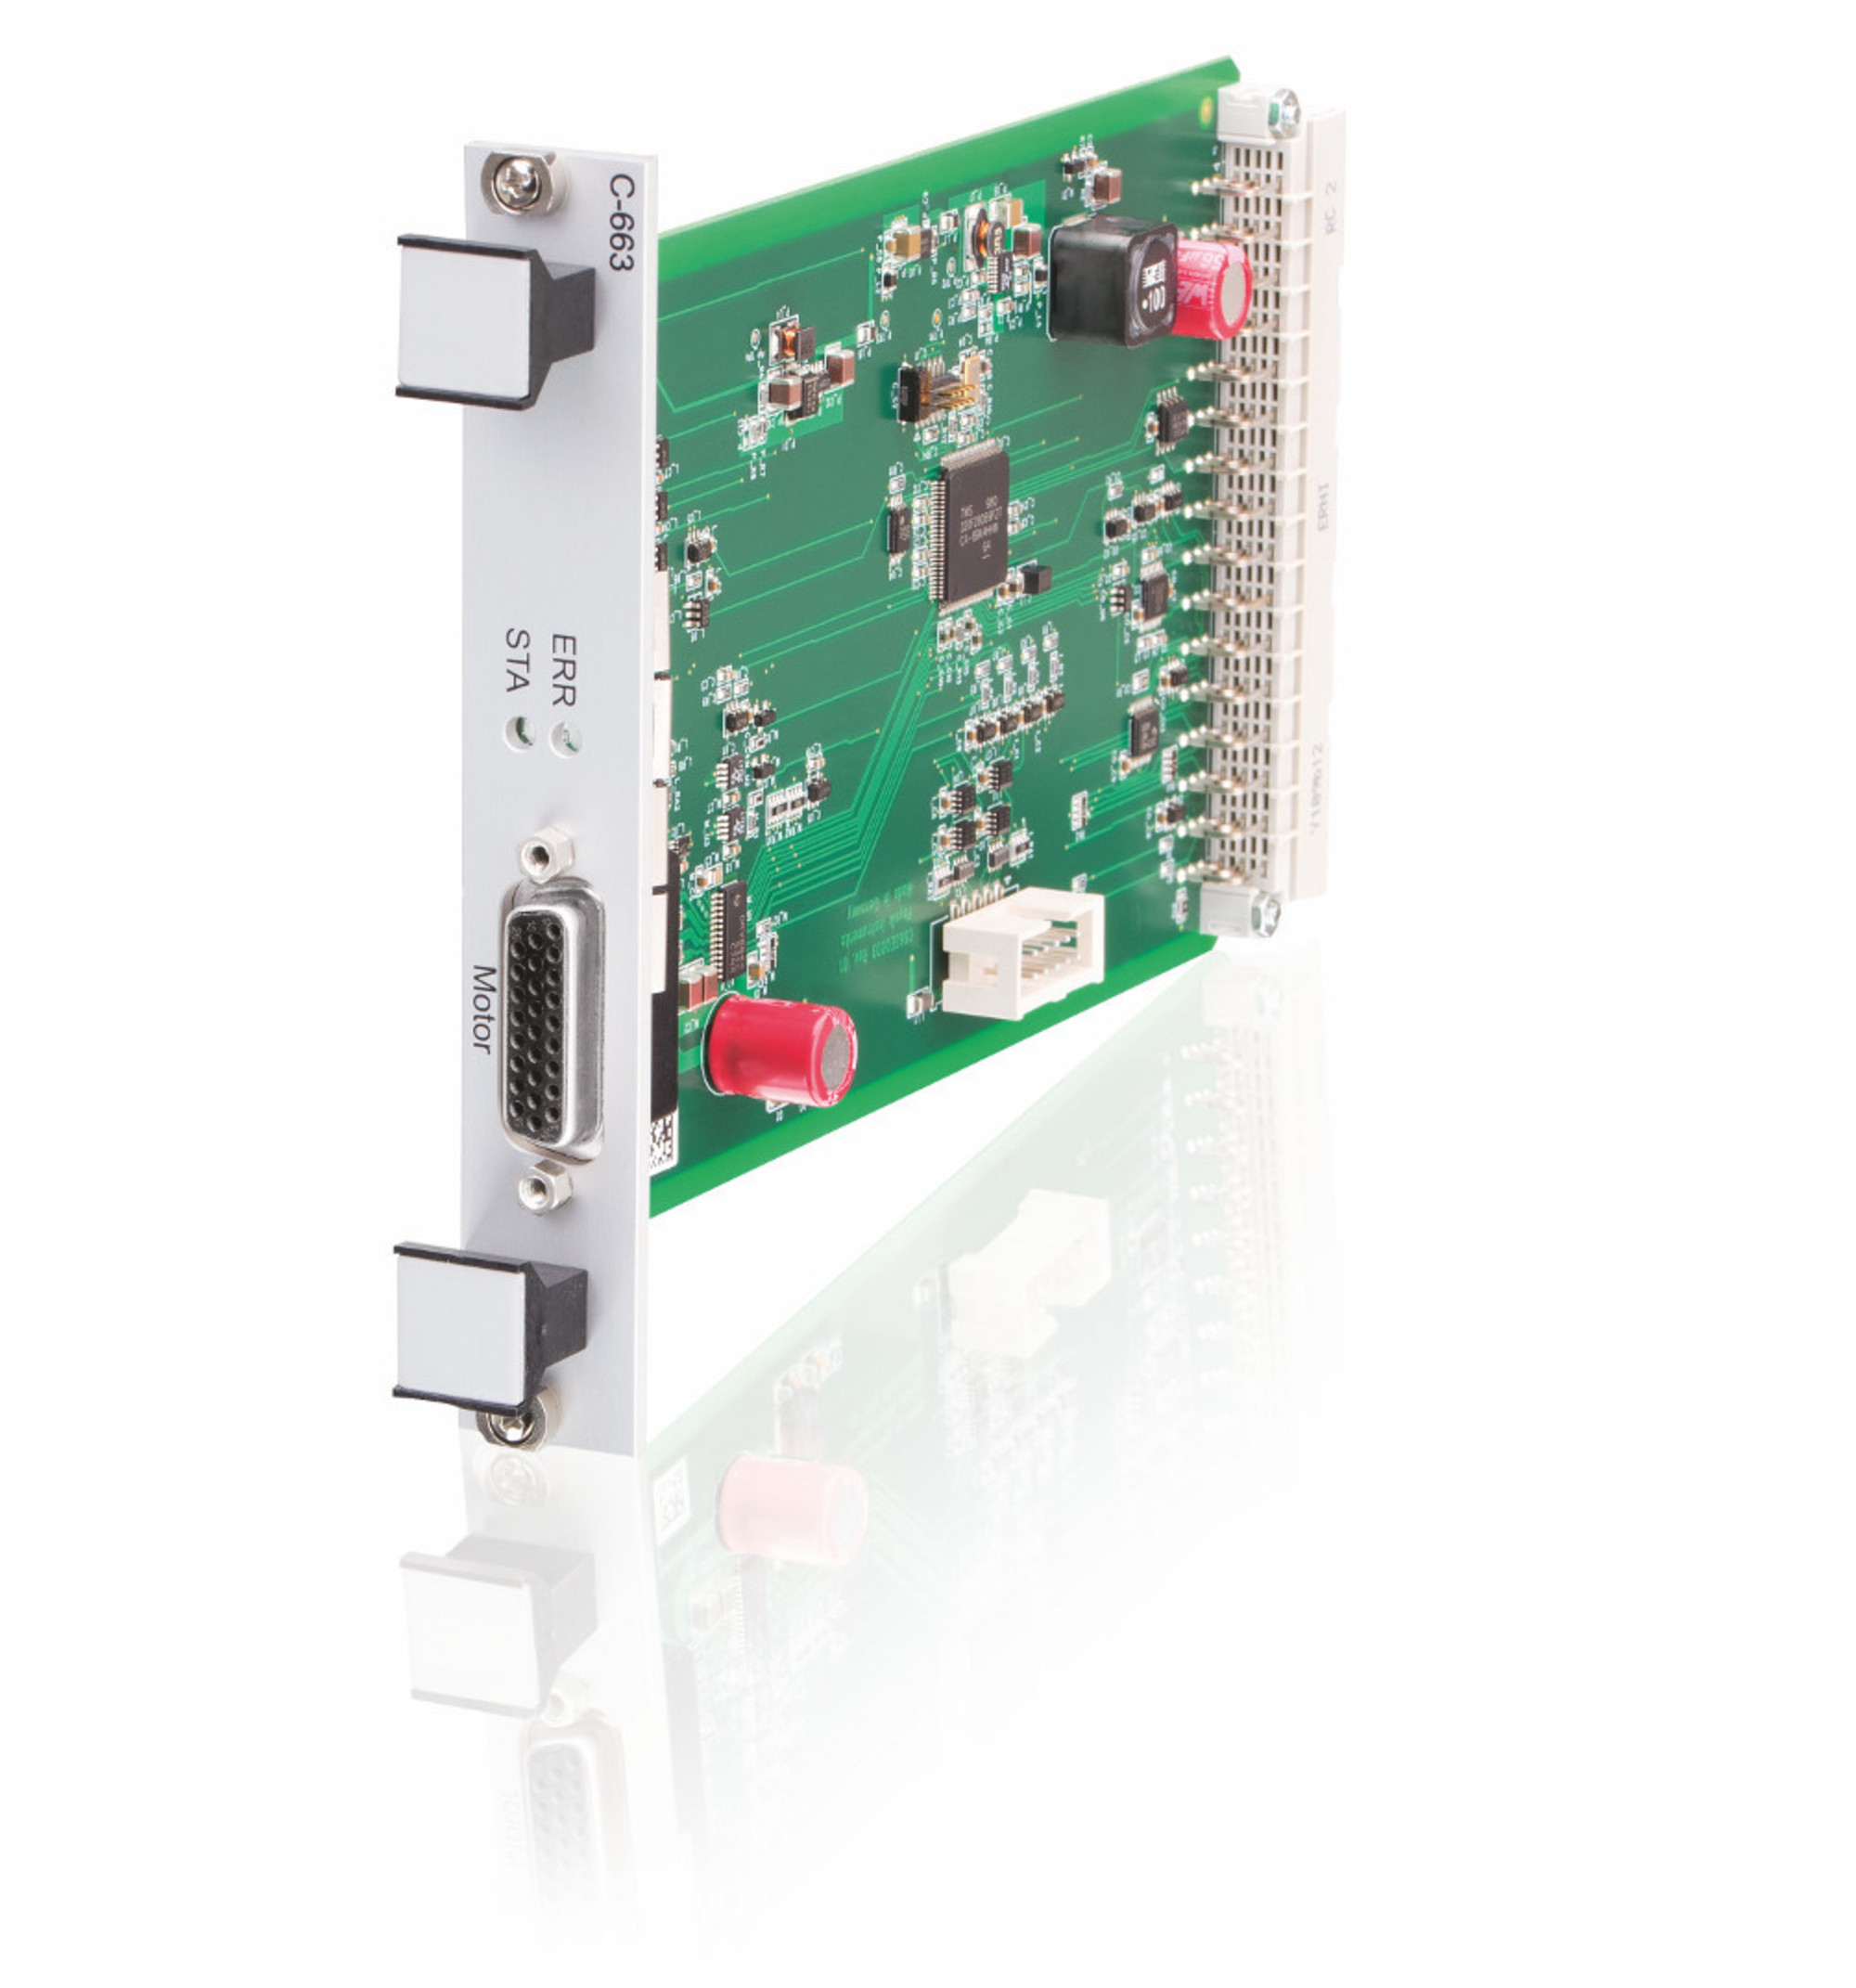 C 66312c885 Mercury Step Stepper Motor Controller Module The Brushless Schematic Command